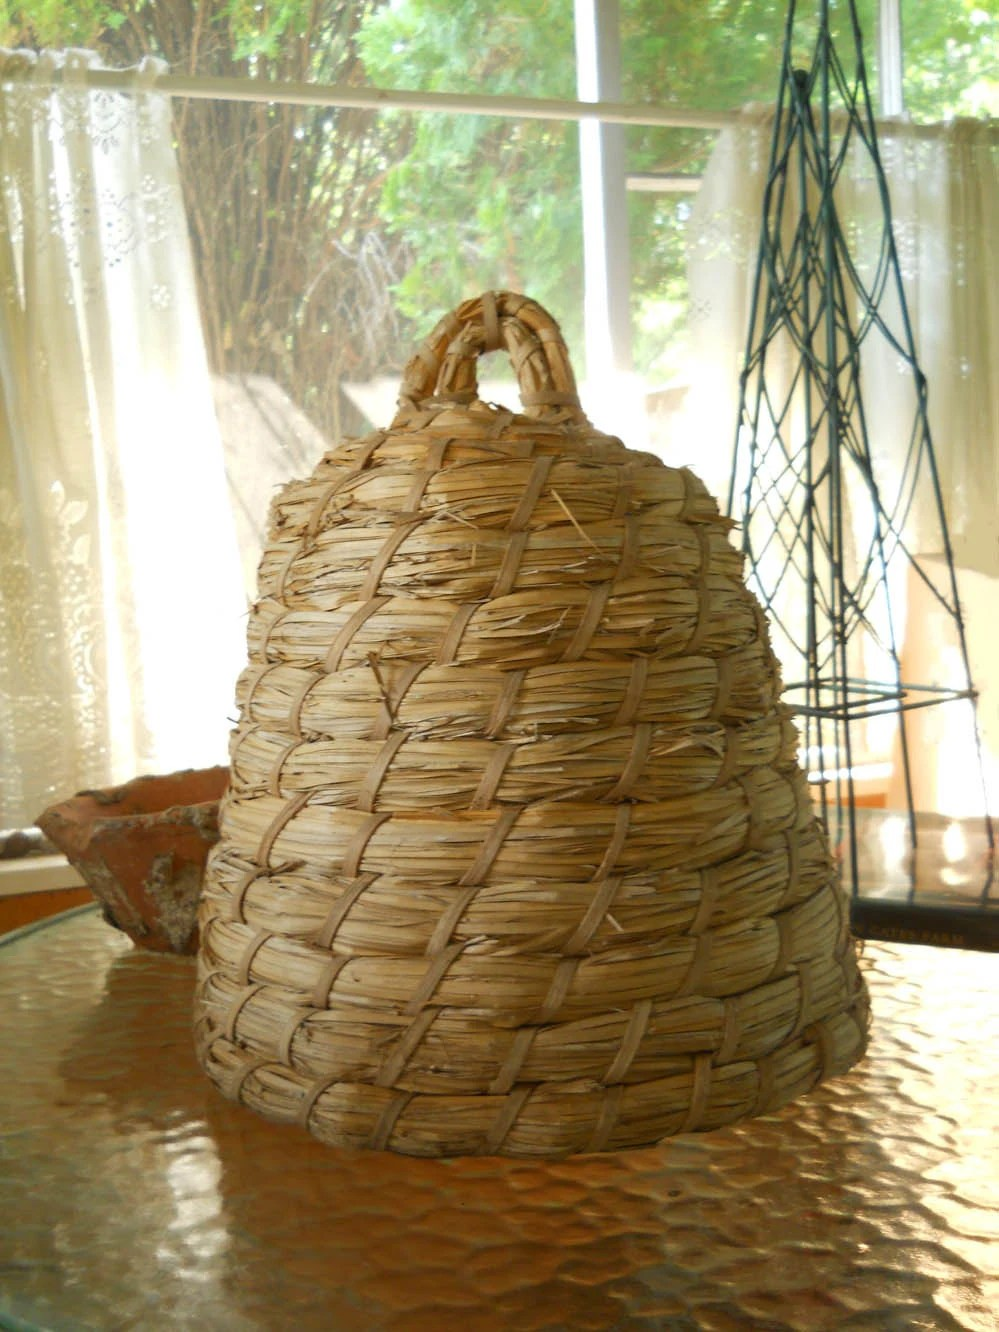 Vintage Large Woven Bee Skep Garden Decor Shabby Chic Rustic